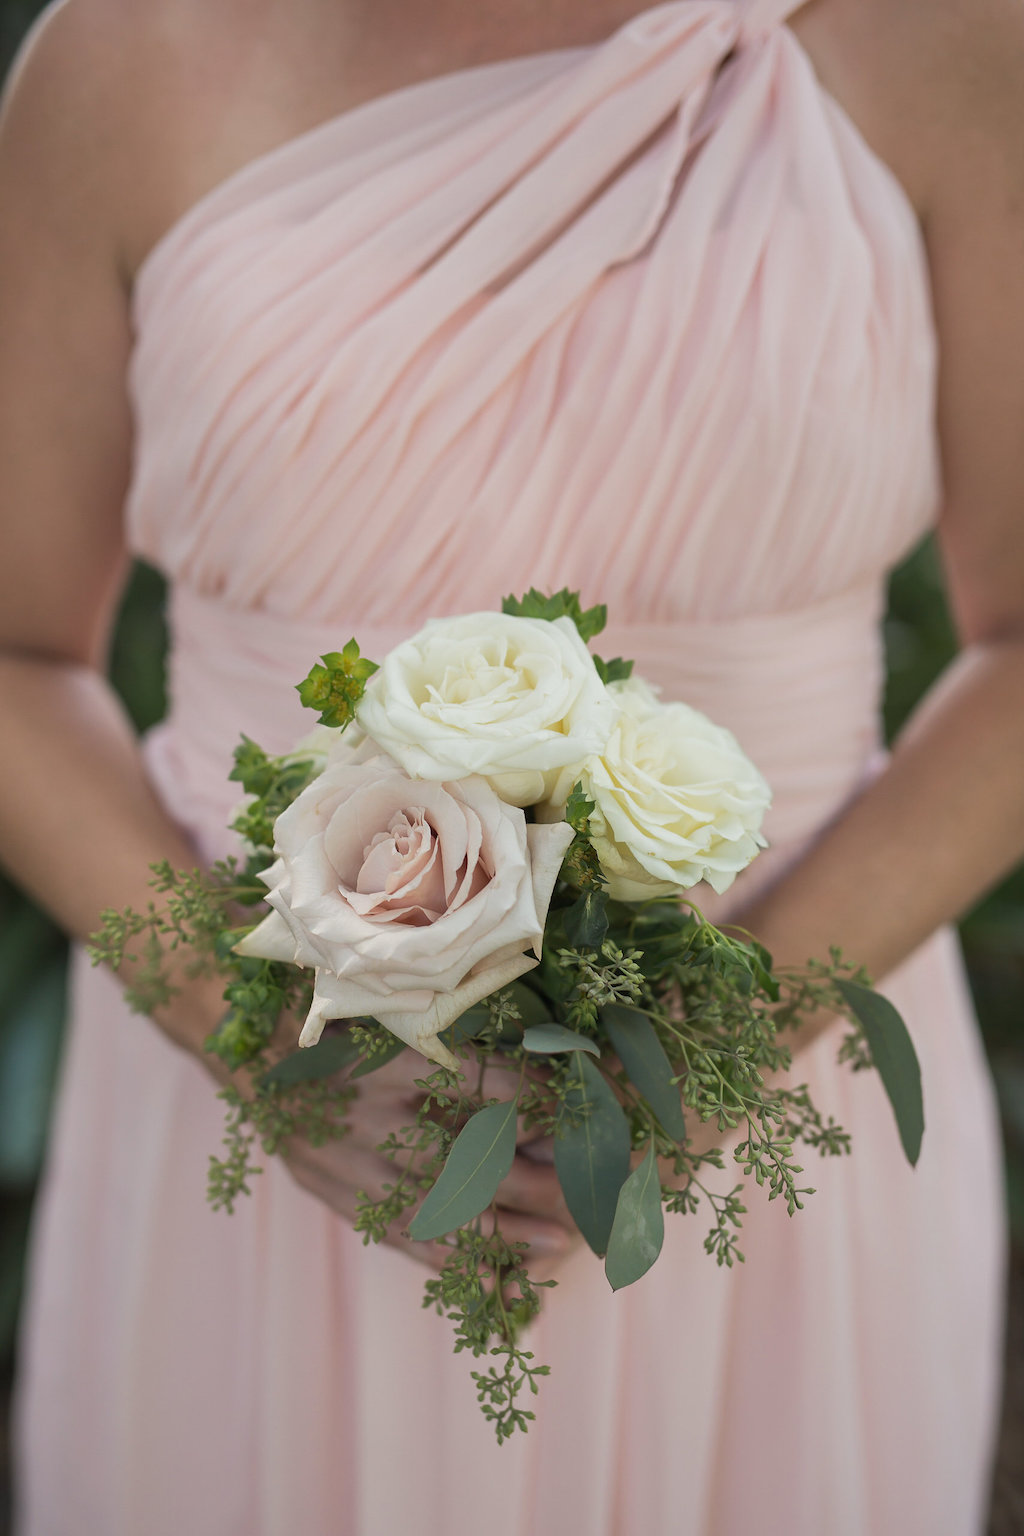 Bridesmaid in Blush Pink Bridesmaid Dress Holding Bouquet with Blush Pink Rose and White Roses and Greenery